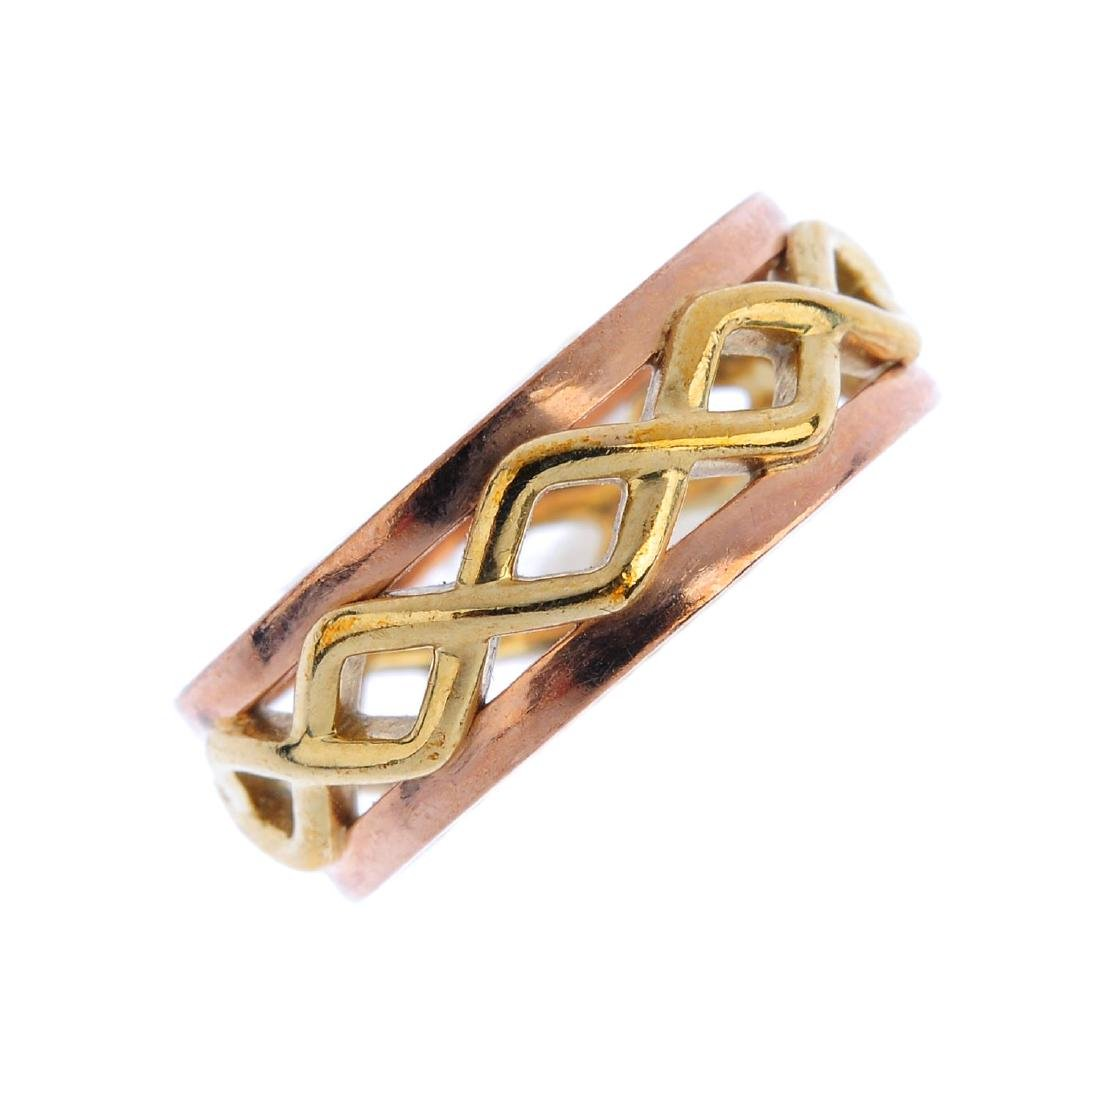 CLOGAU - a 9ct gold band ring. Of bi-colour design, the